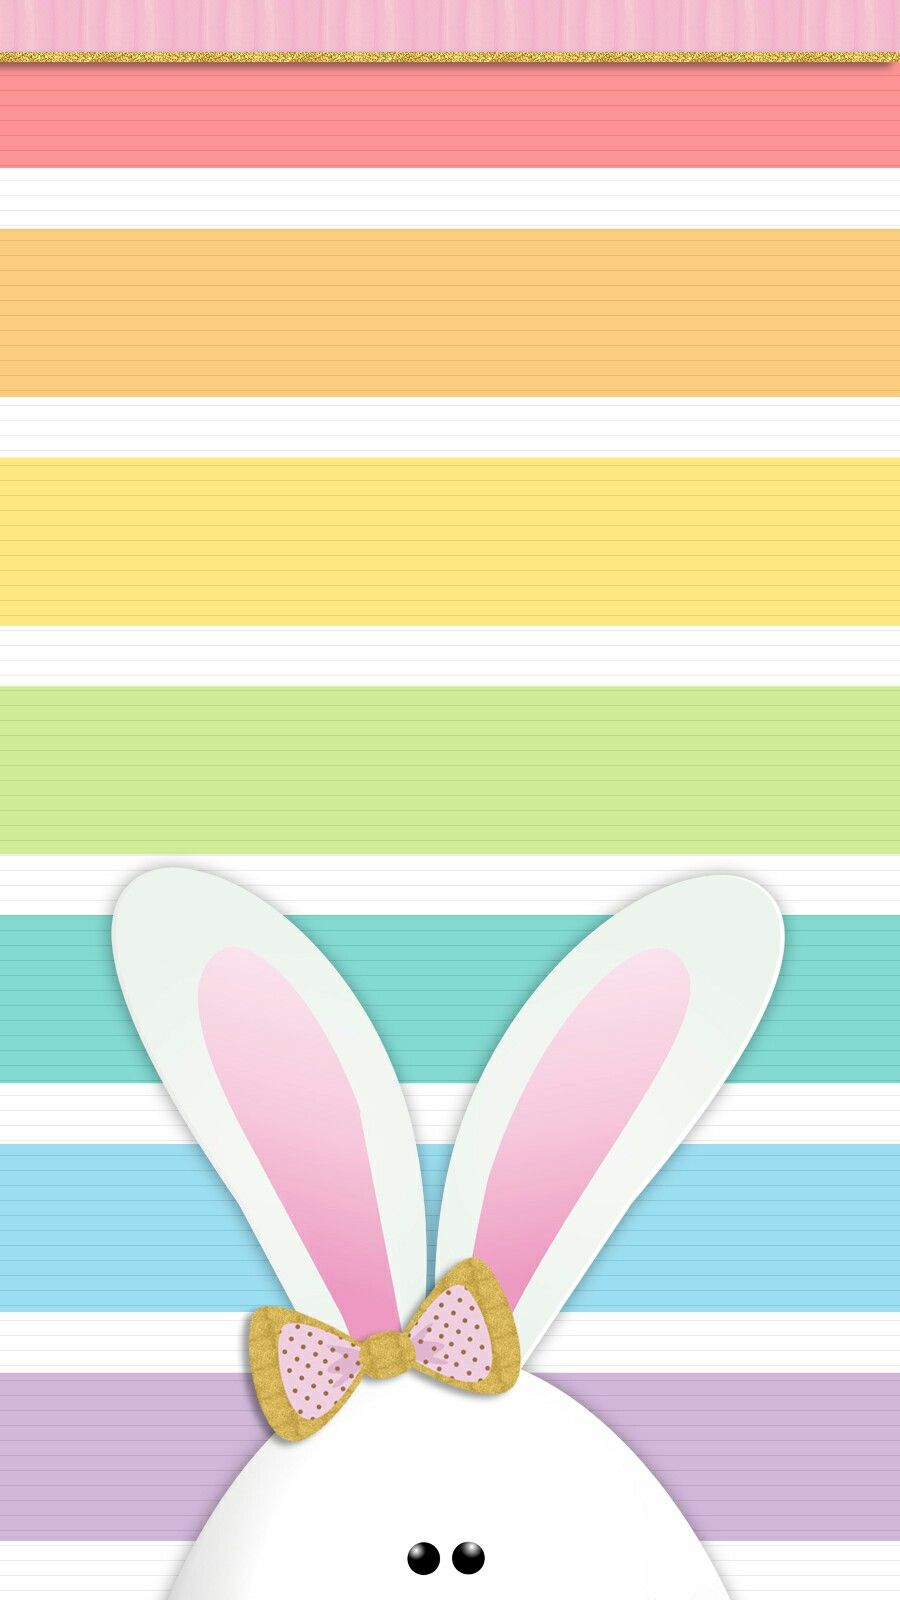 Easter bunny wallpaper iphone | Cute walls by me ...